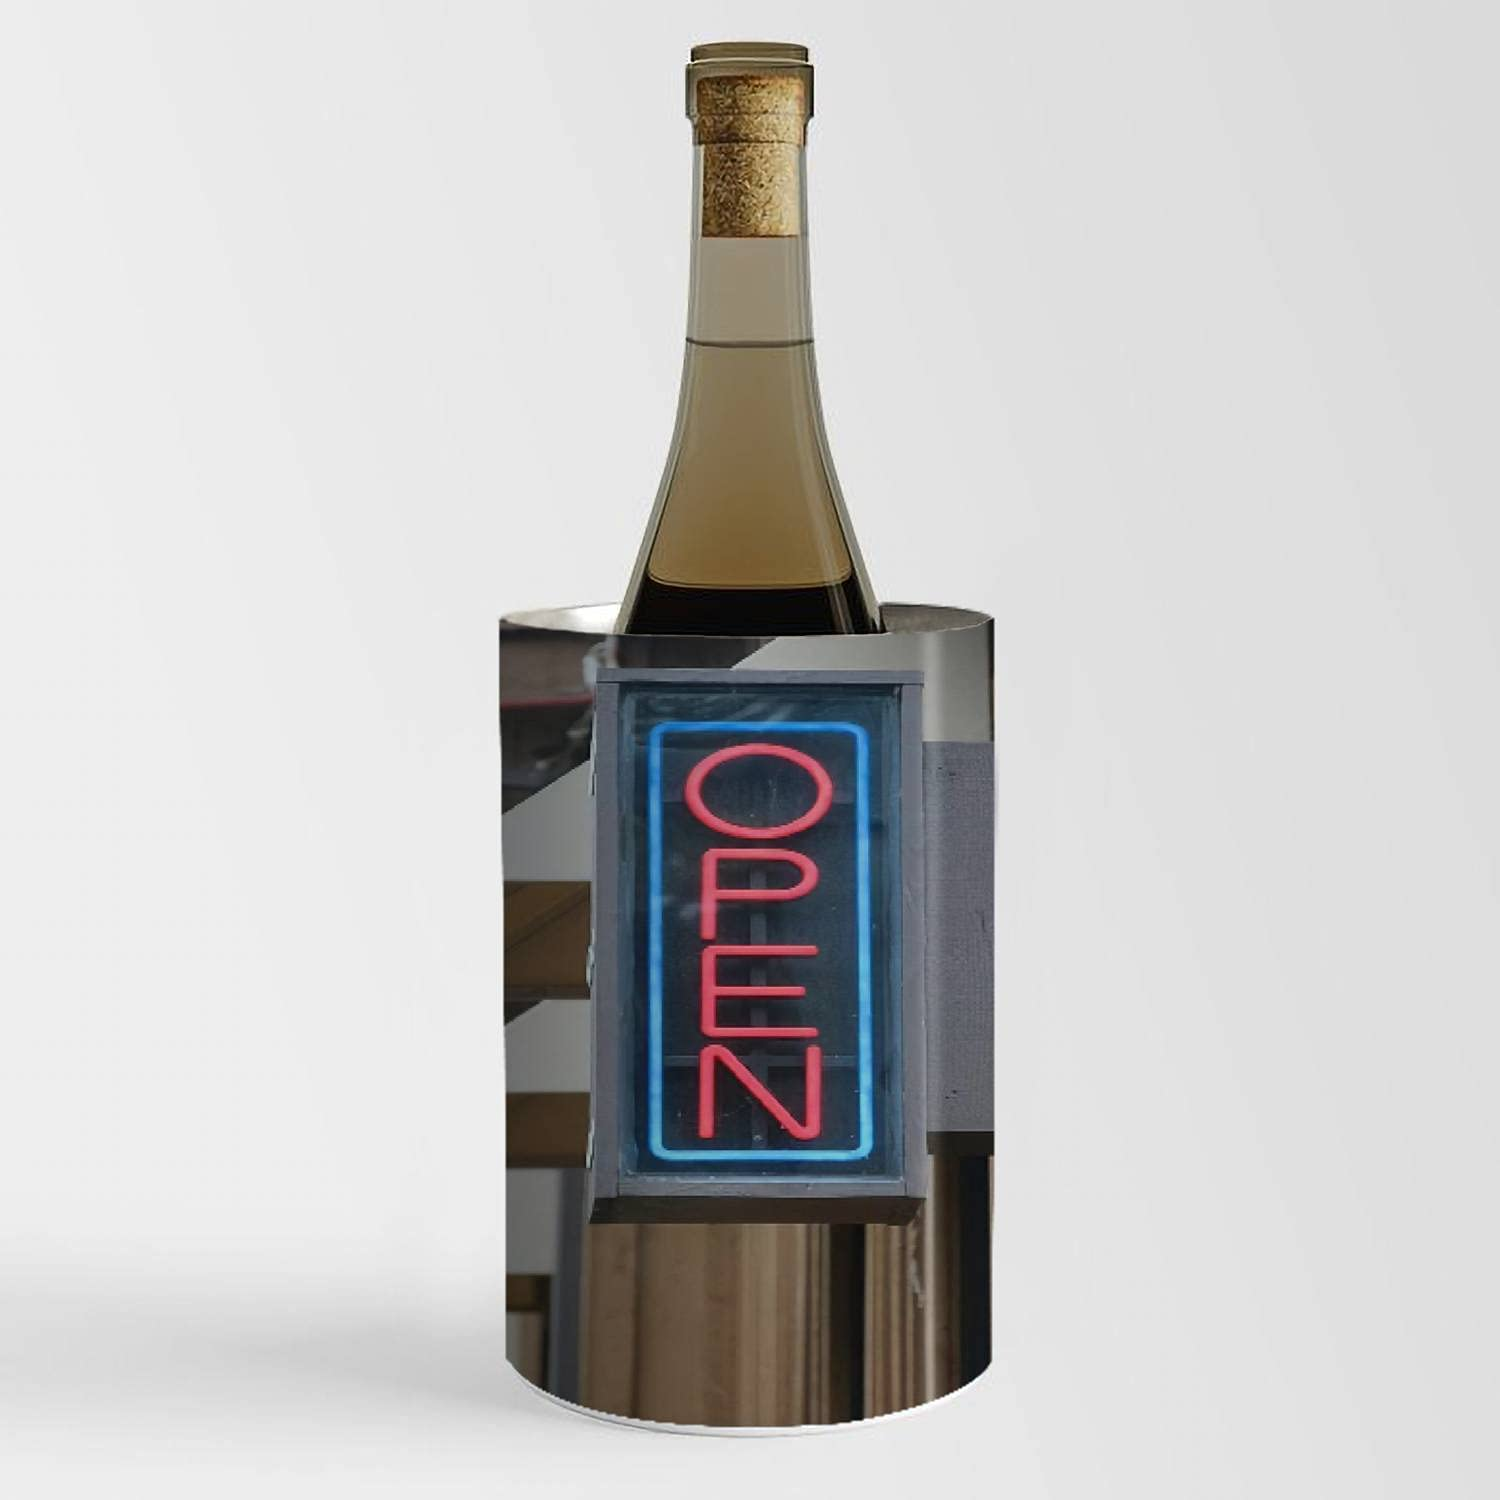 Wine Fort Worth Mall Chiller Bucket - Neon Open Fort Worth Mall Sign for Cooler 750ml Champagne